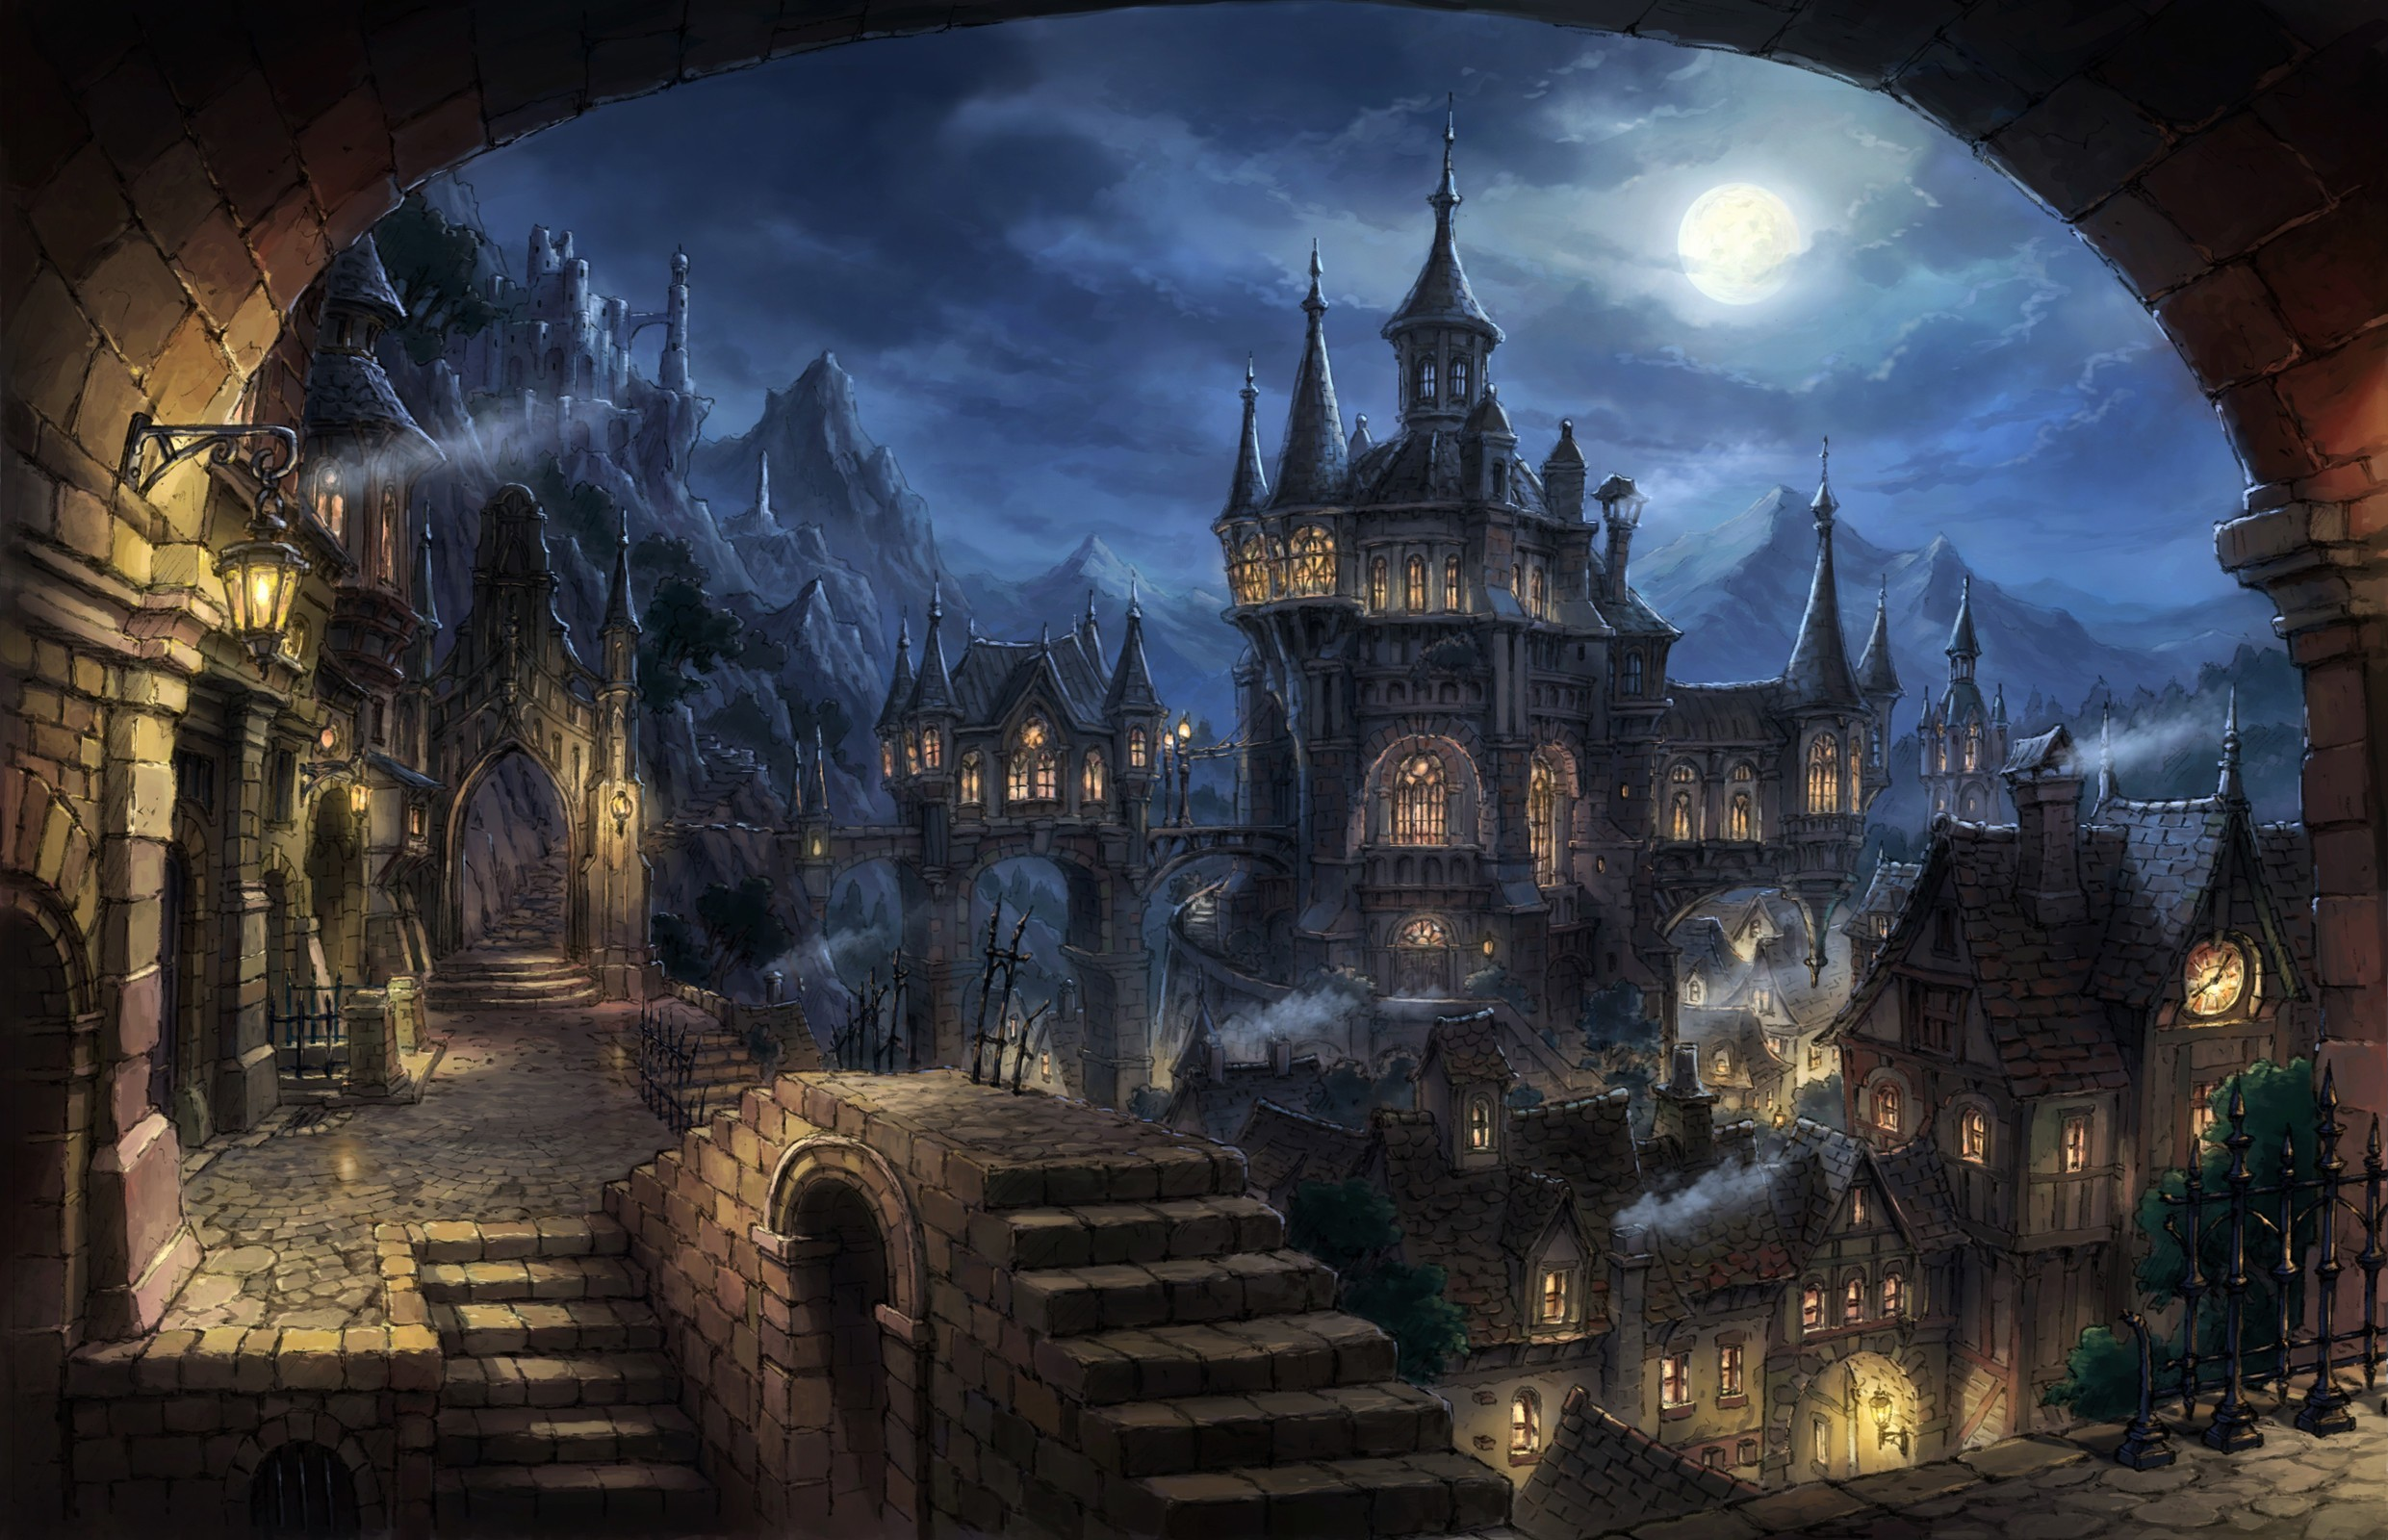 2481x1600 wallpaper cityscape · dark · fantasy art